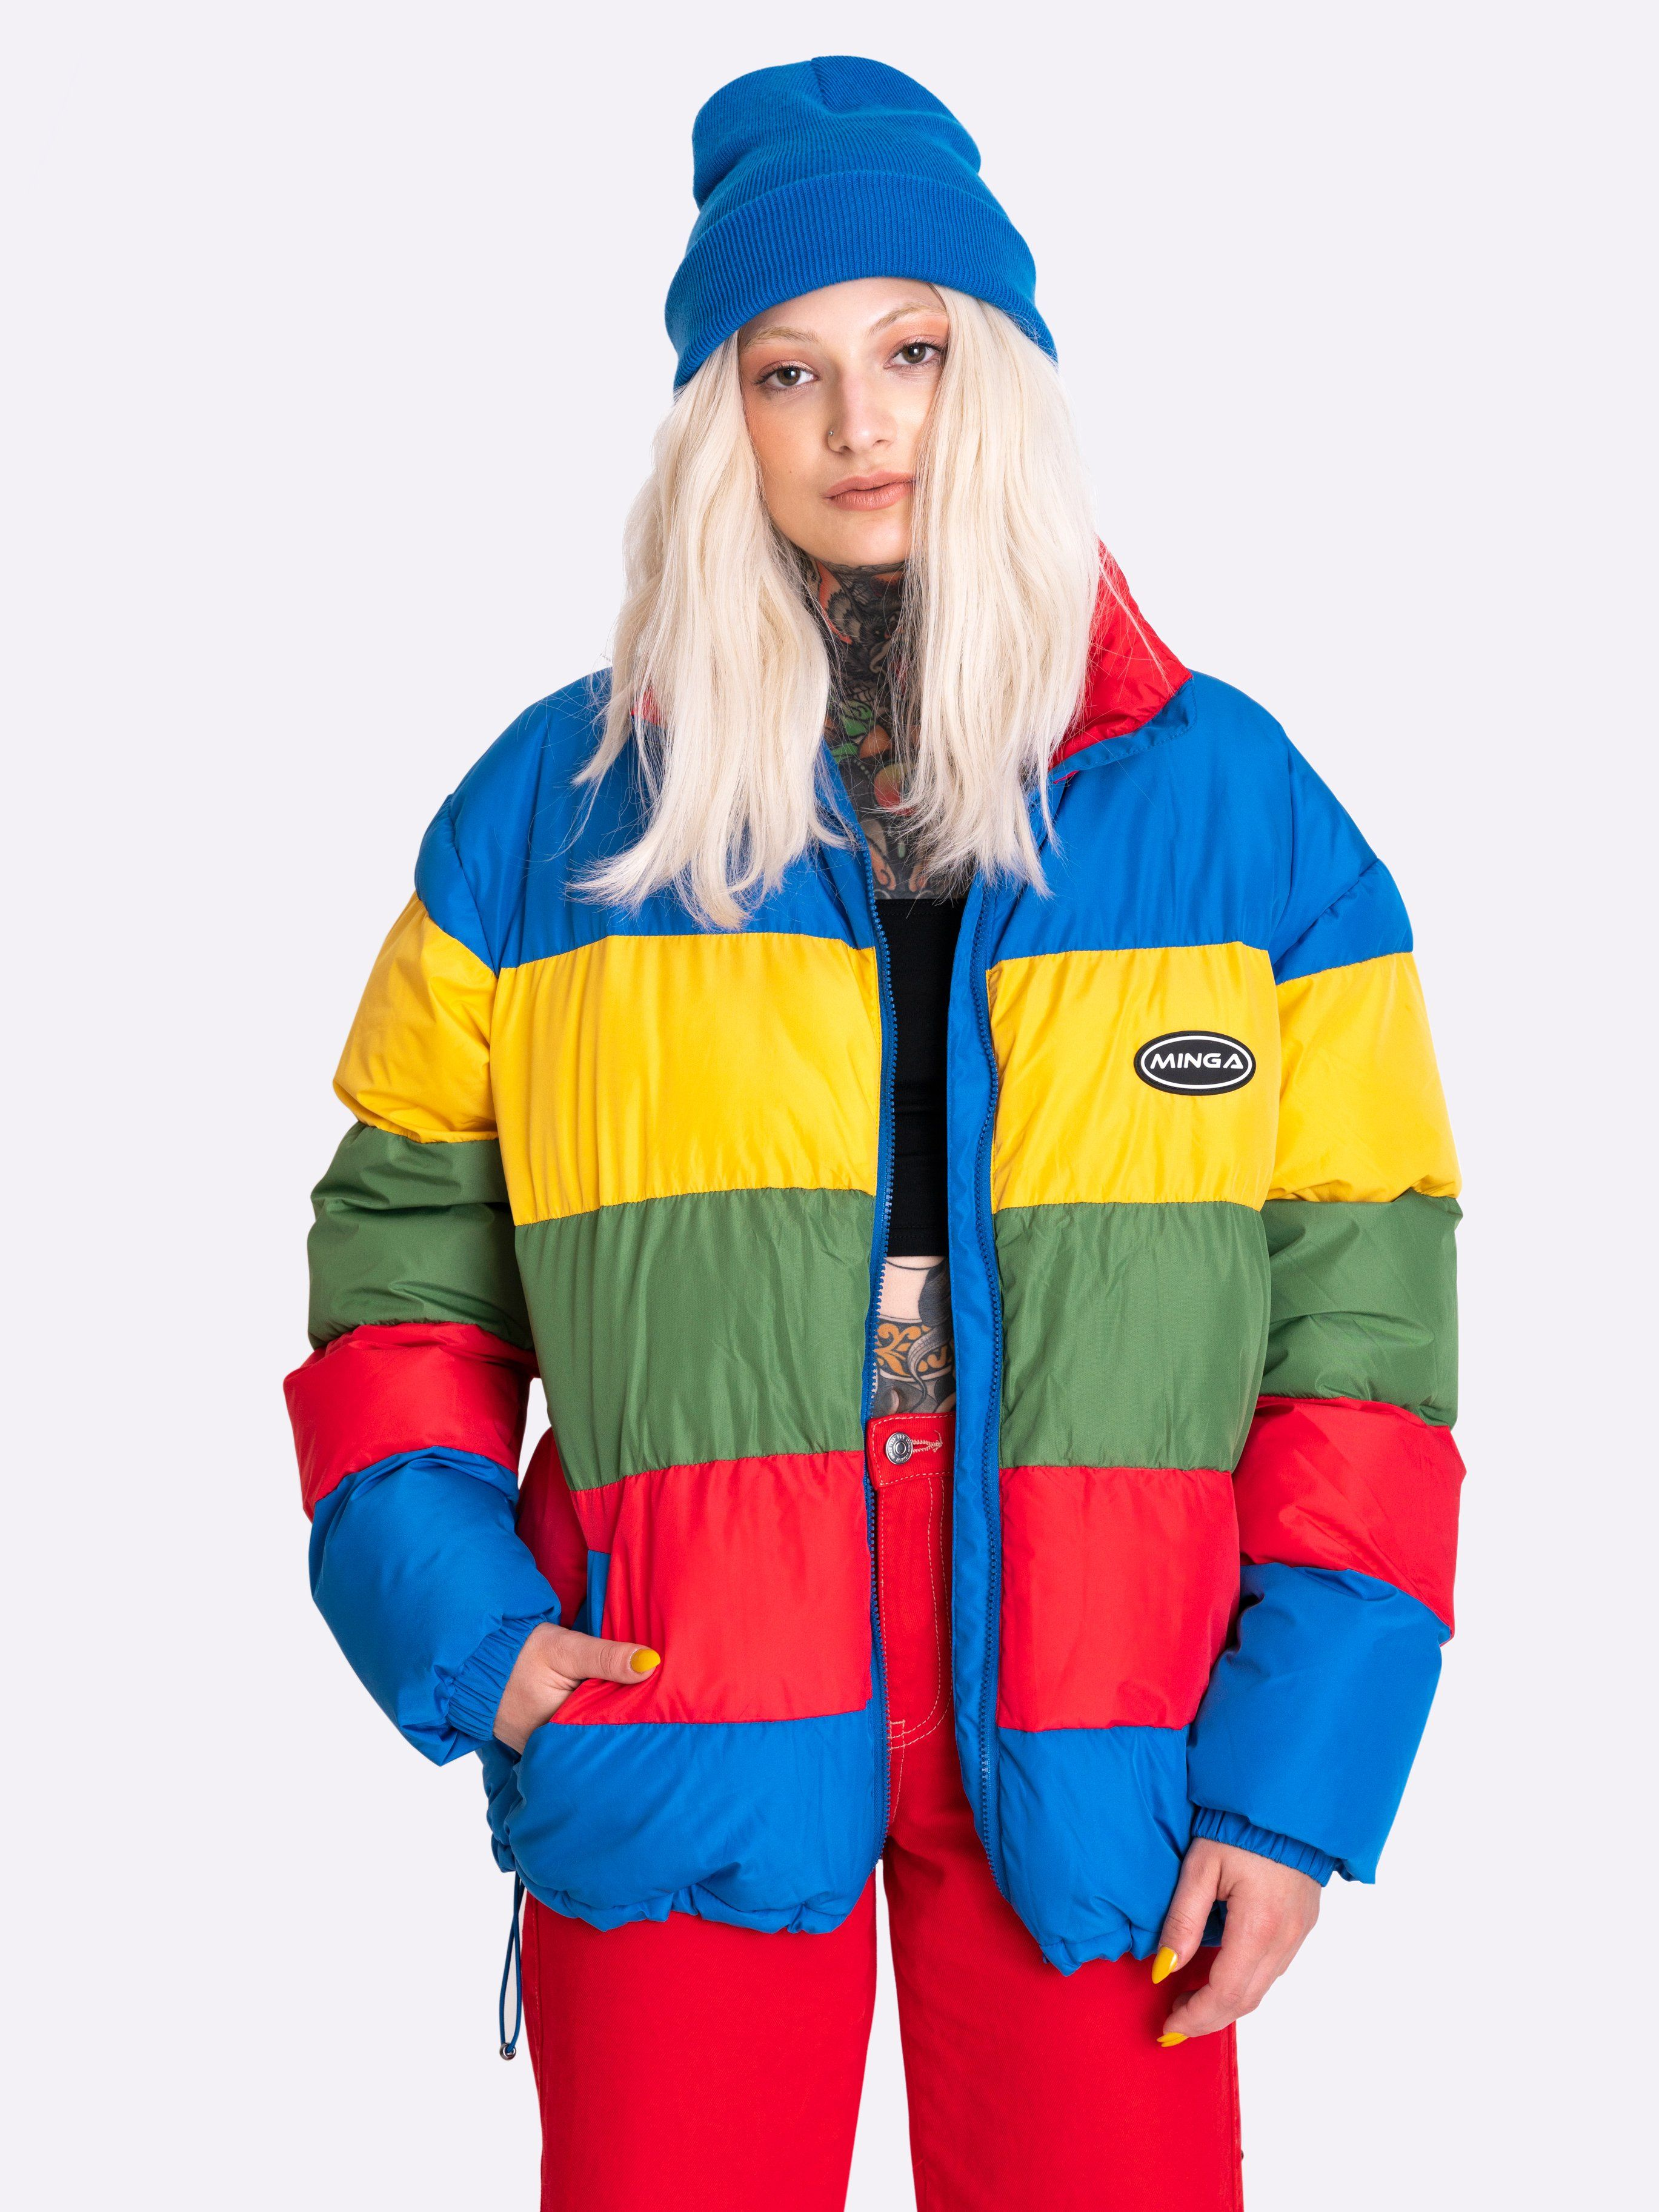 Rainbow Puffer Jacket Denim Joggers Outfit Puffer Jacket Outfit Retro Outfits [ 3651 x 2738 Pixel ]